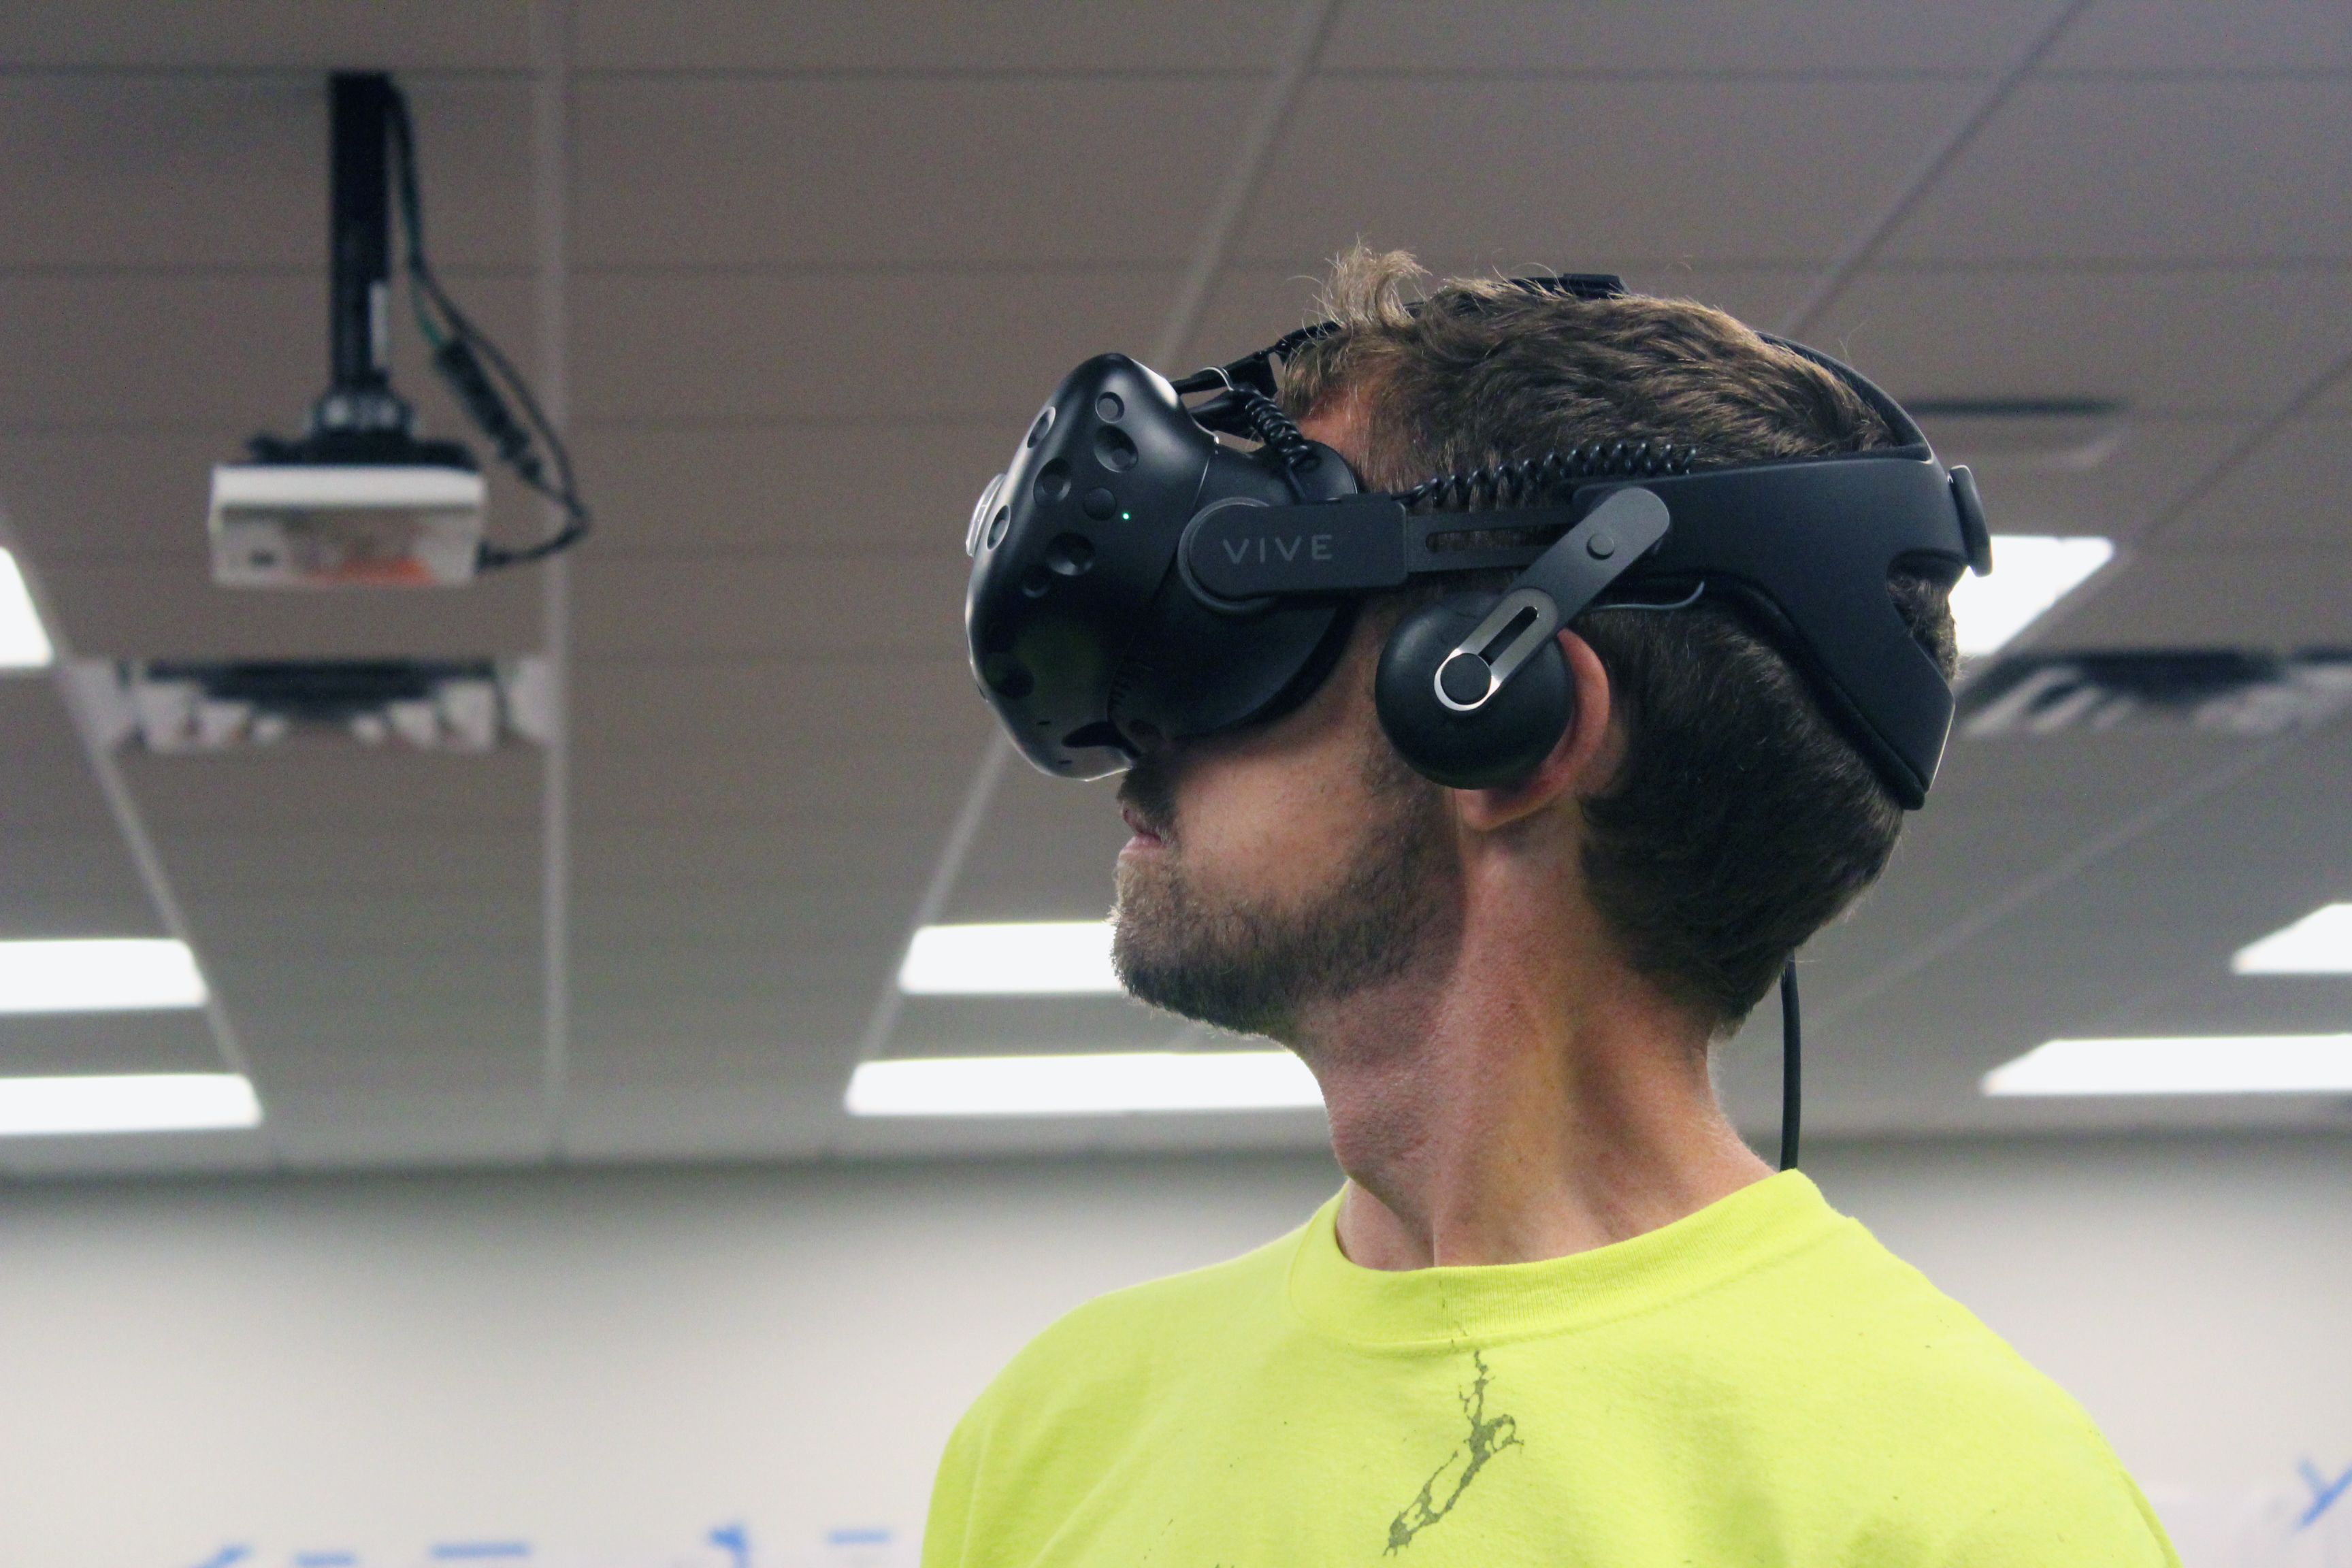 VR headsets can guide users in safety training